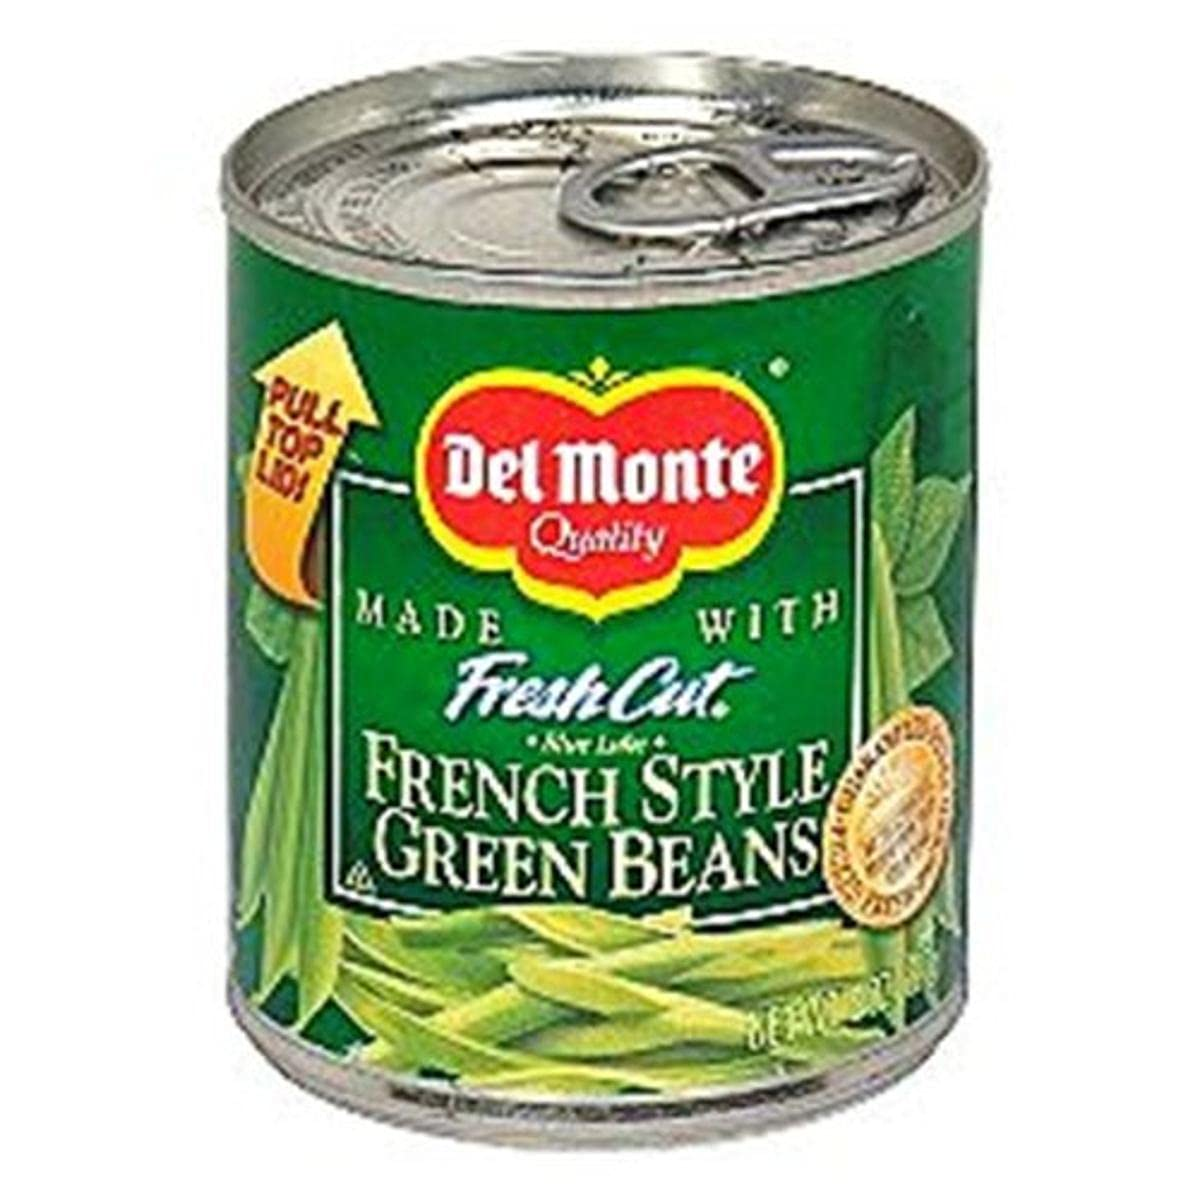 Del Monte half Arlington Mall French Style Green of 12 Pack 8-Ounce Beans